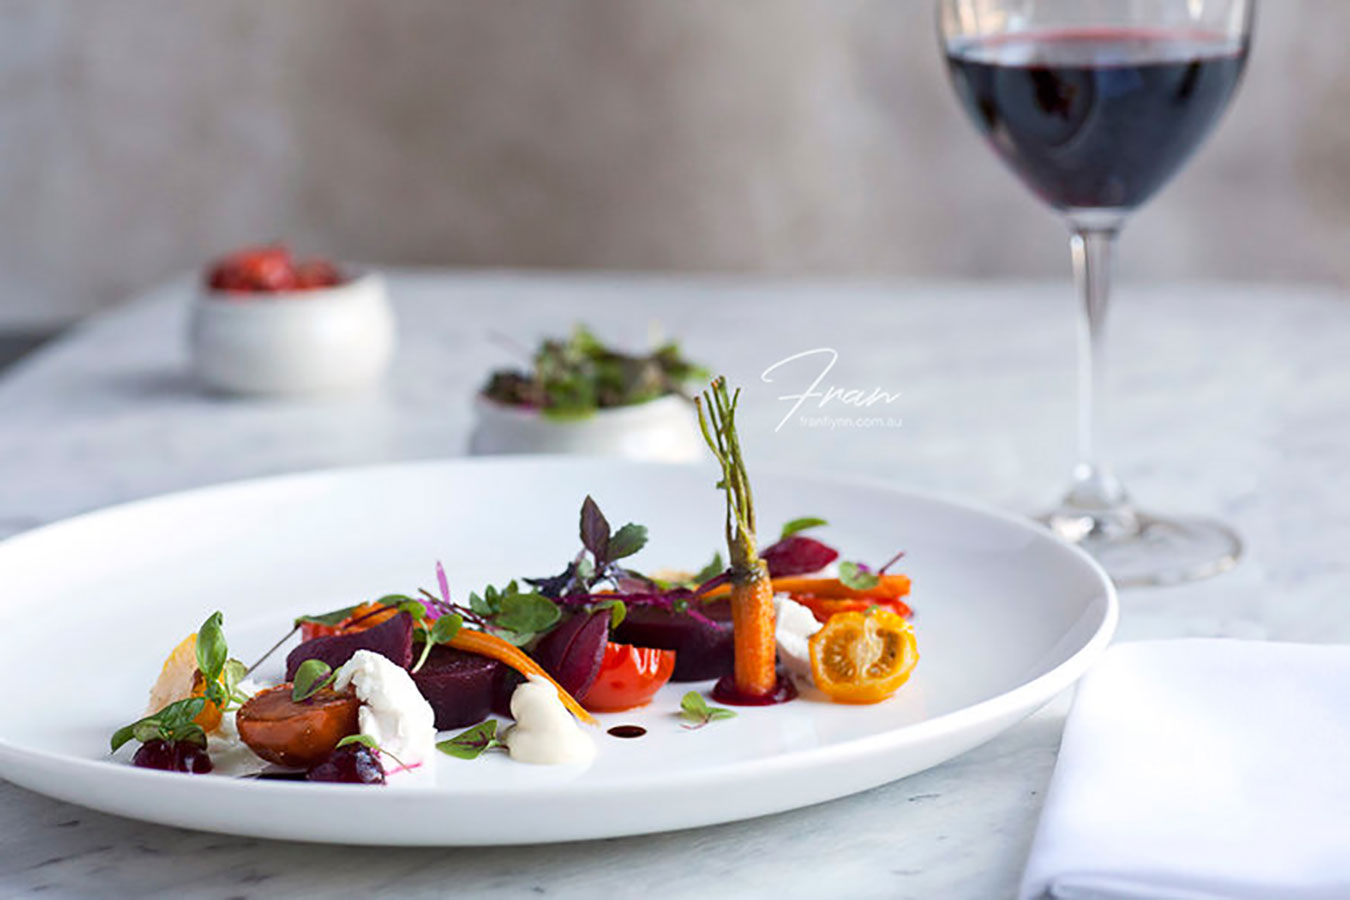 BALTHAZAR WINE & DINE, CROWNE PLAZA - TAPAS SERIES >>